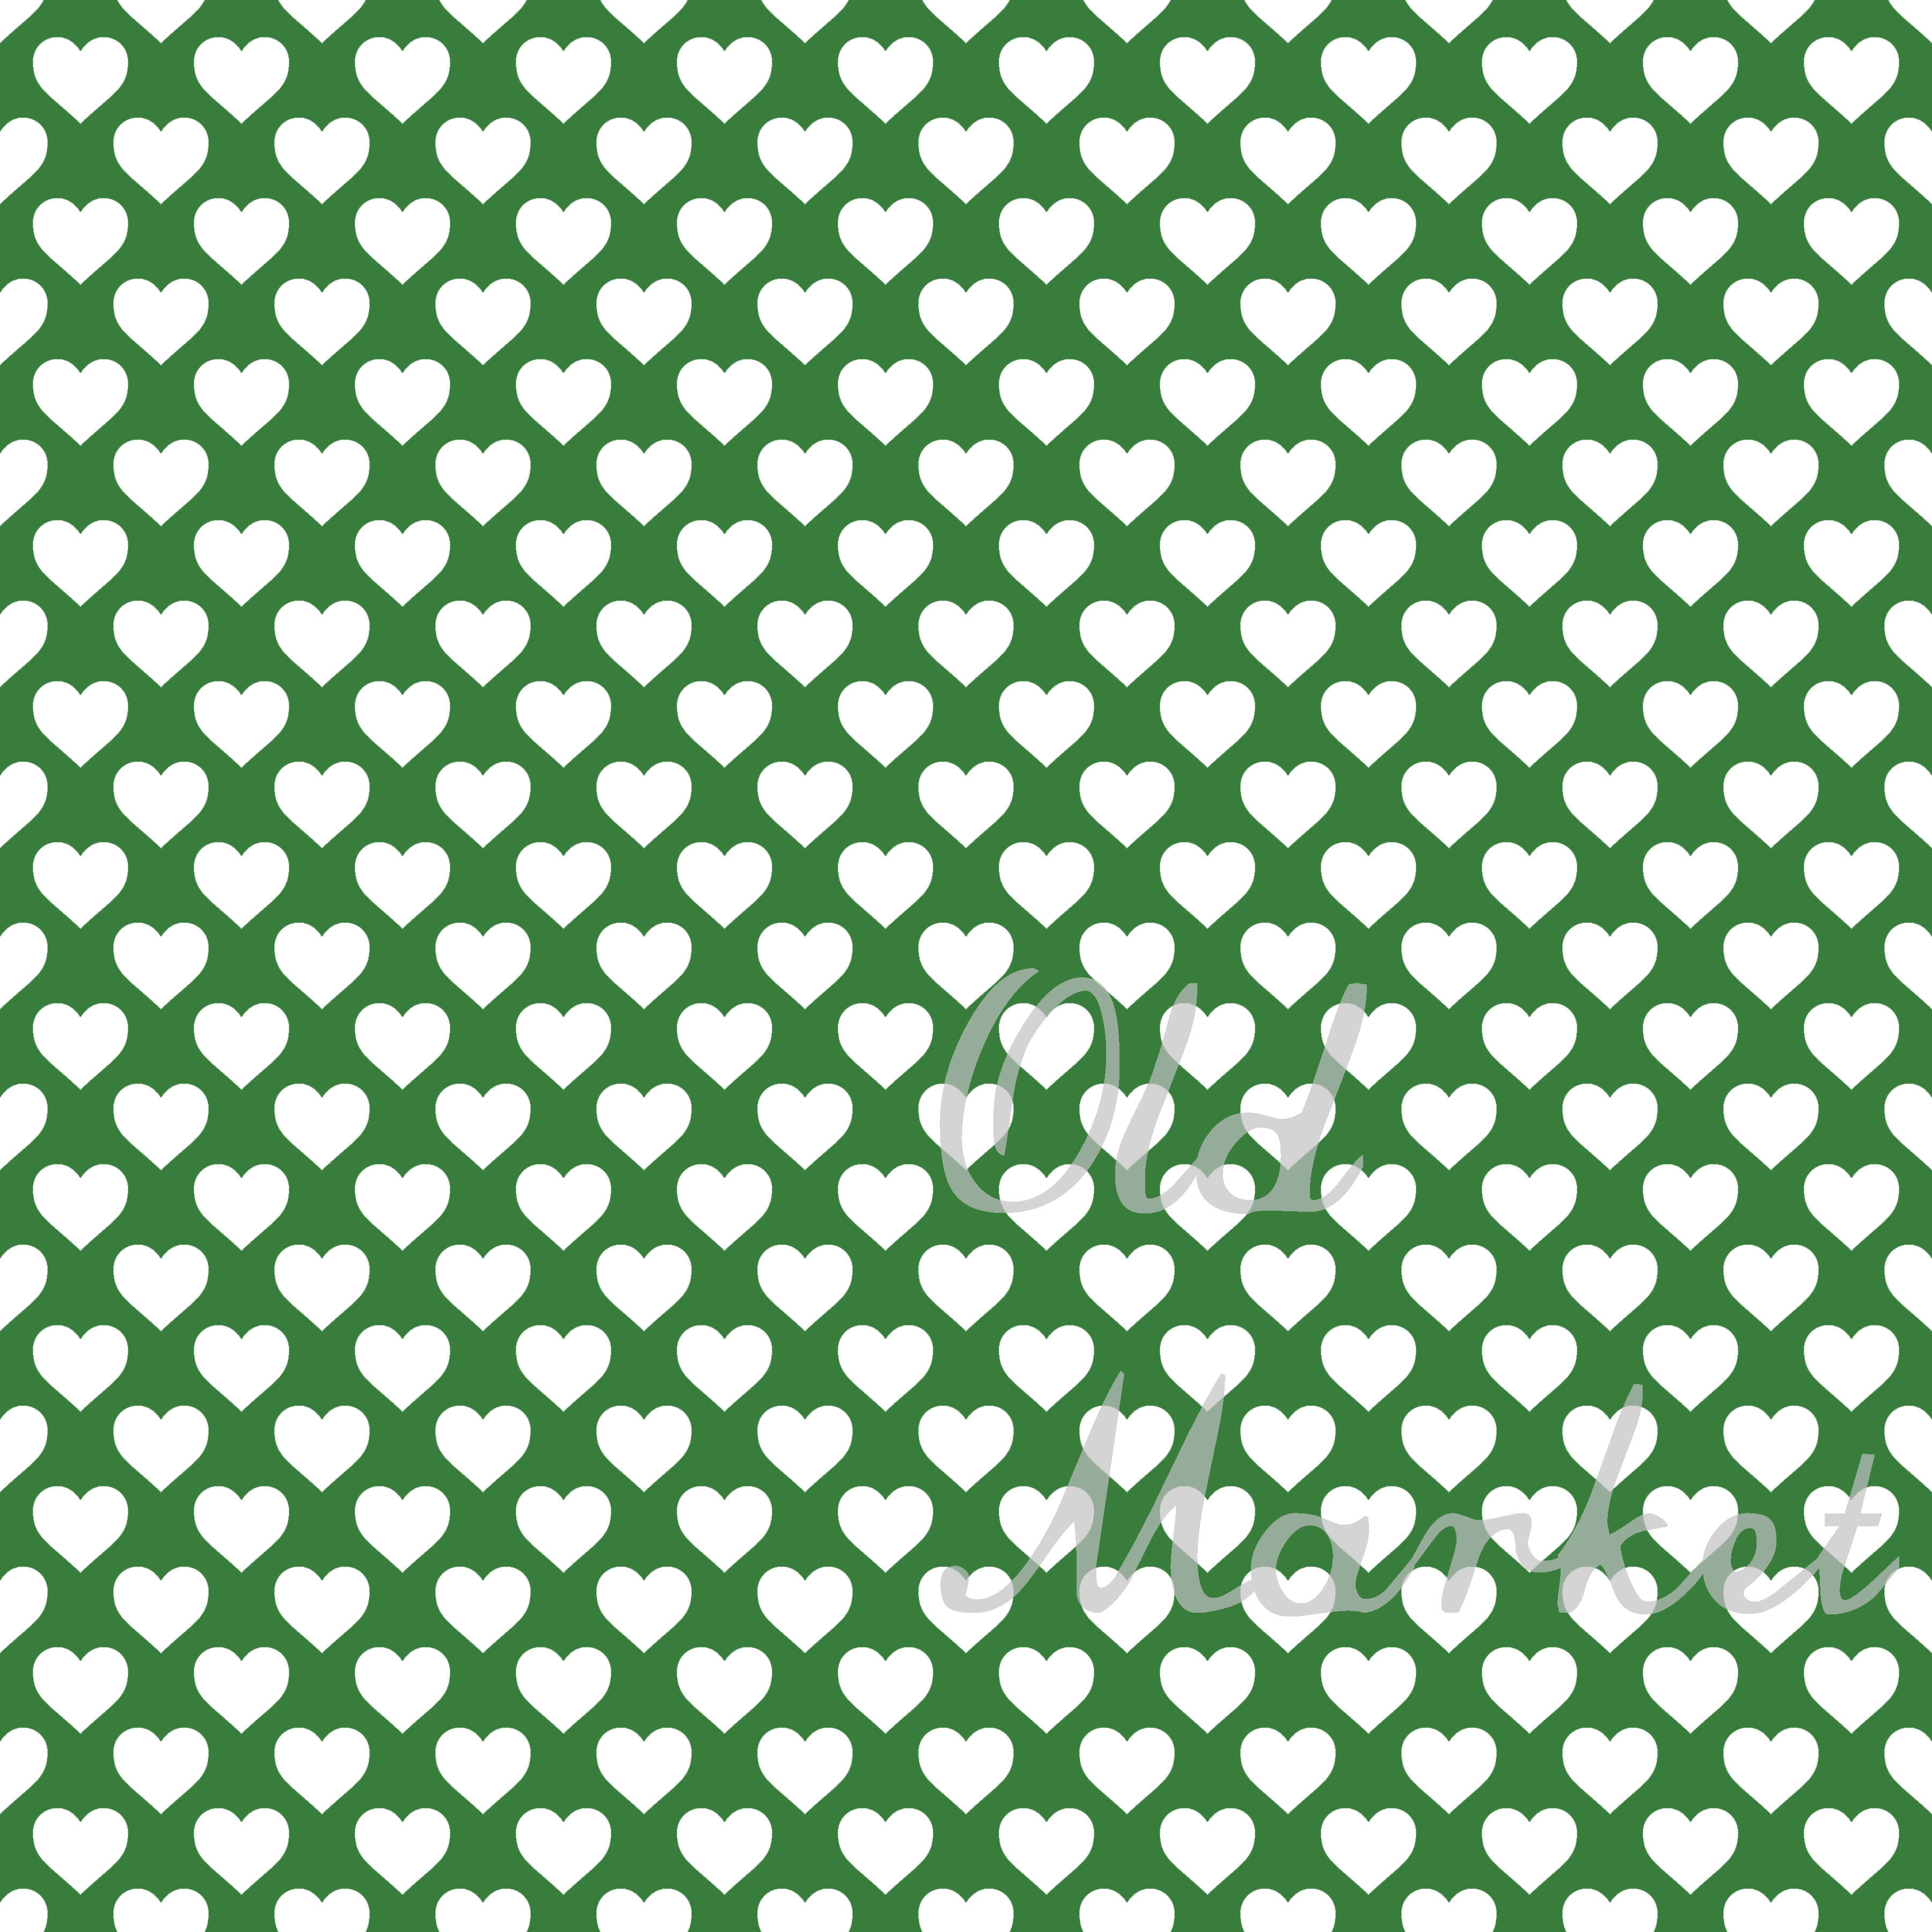 Hearts Digital Paper Graphic Backgrounds By oldmarketdesigns - Image 2